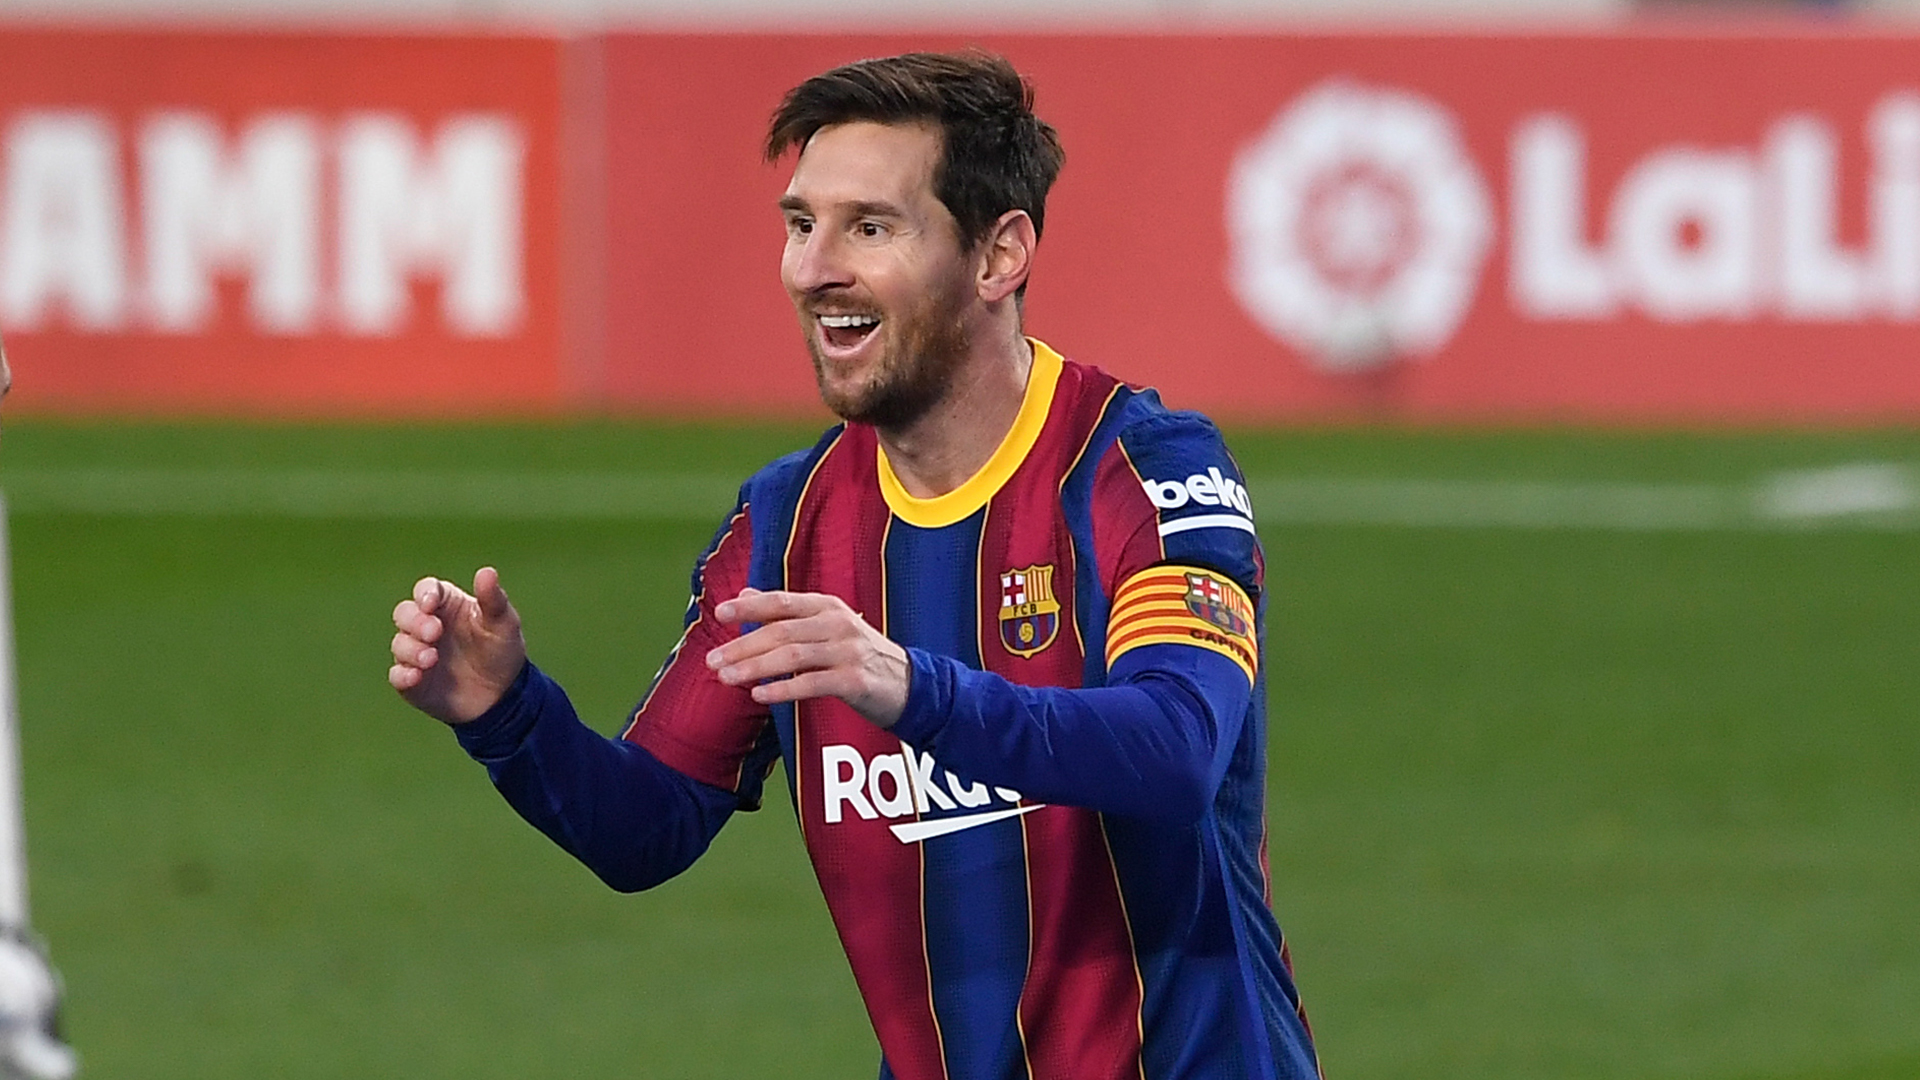 Barcelona presidential candidate could rename Camp Nou after Messi